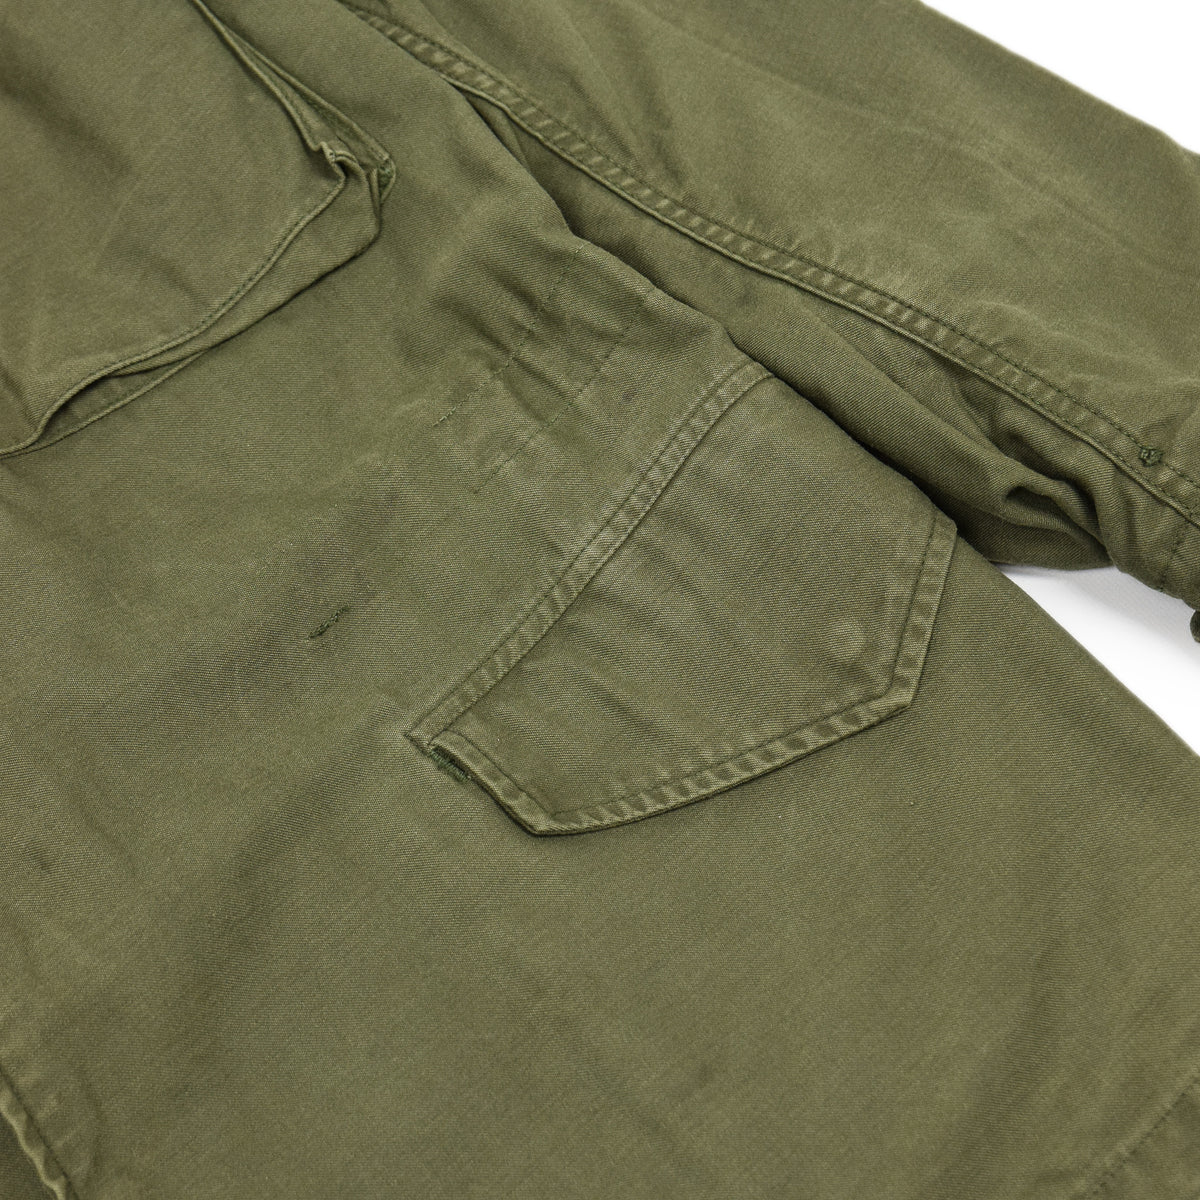 Vintage 60s Vietnam M-65 Man's Field Sateen 0G-107 Green US Army Coat XS pocket